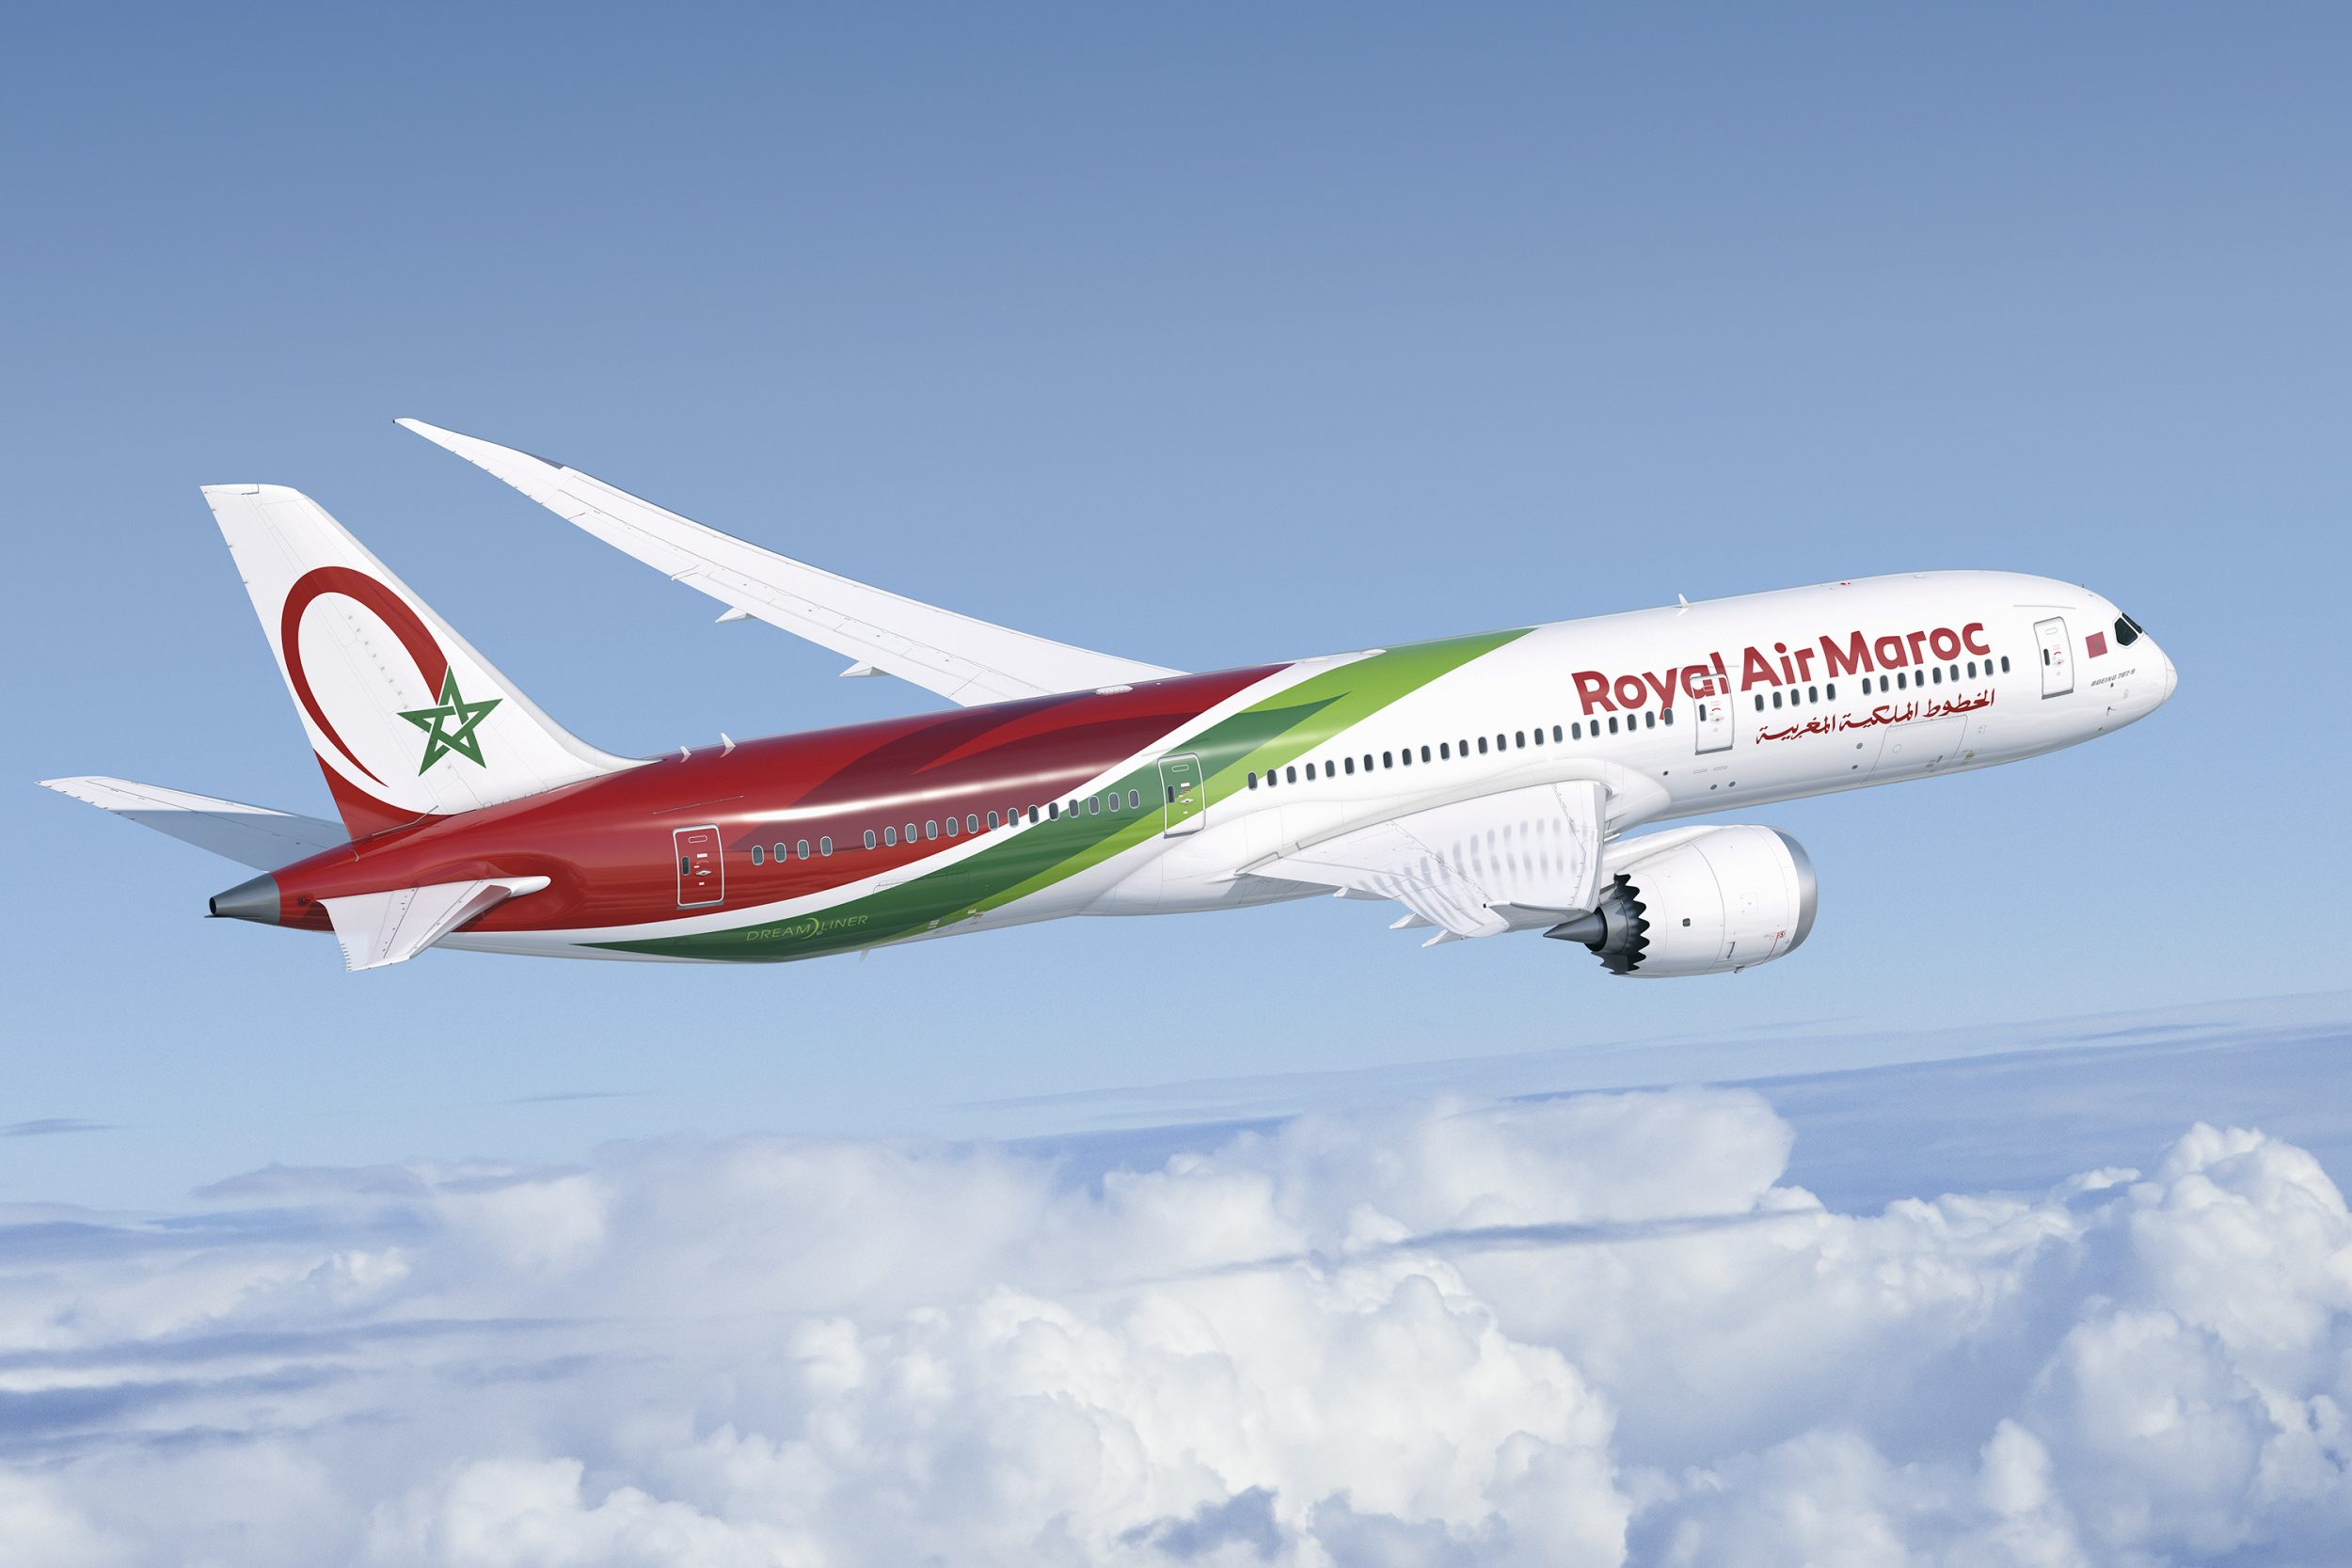 La Royal Air Maroc, transporteur officiel de la Biennale de Luanda